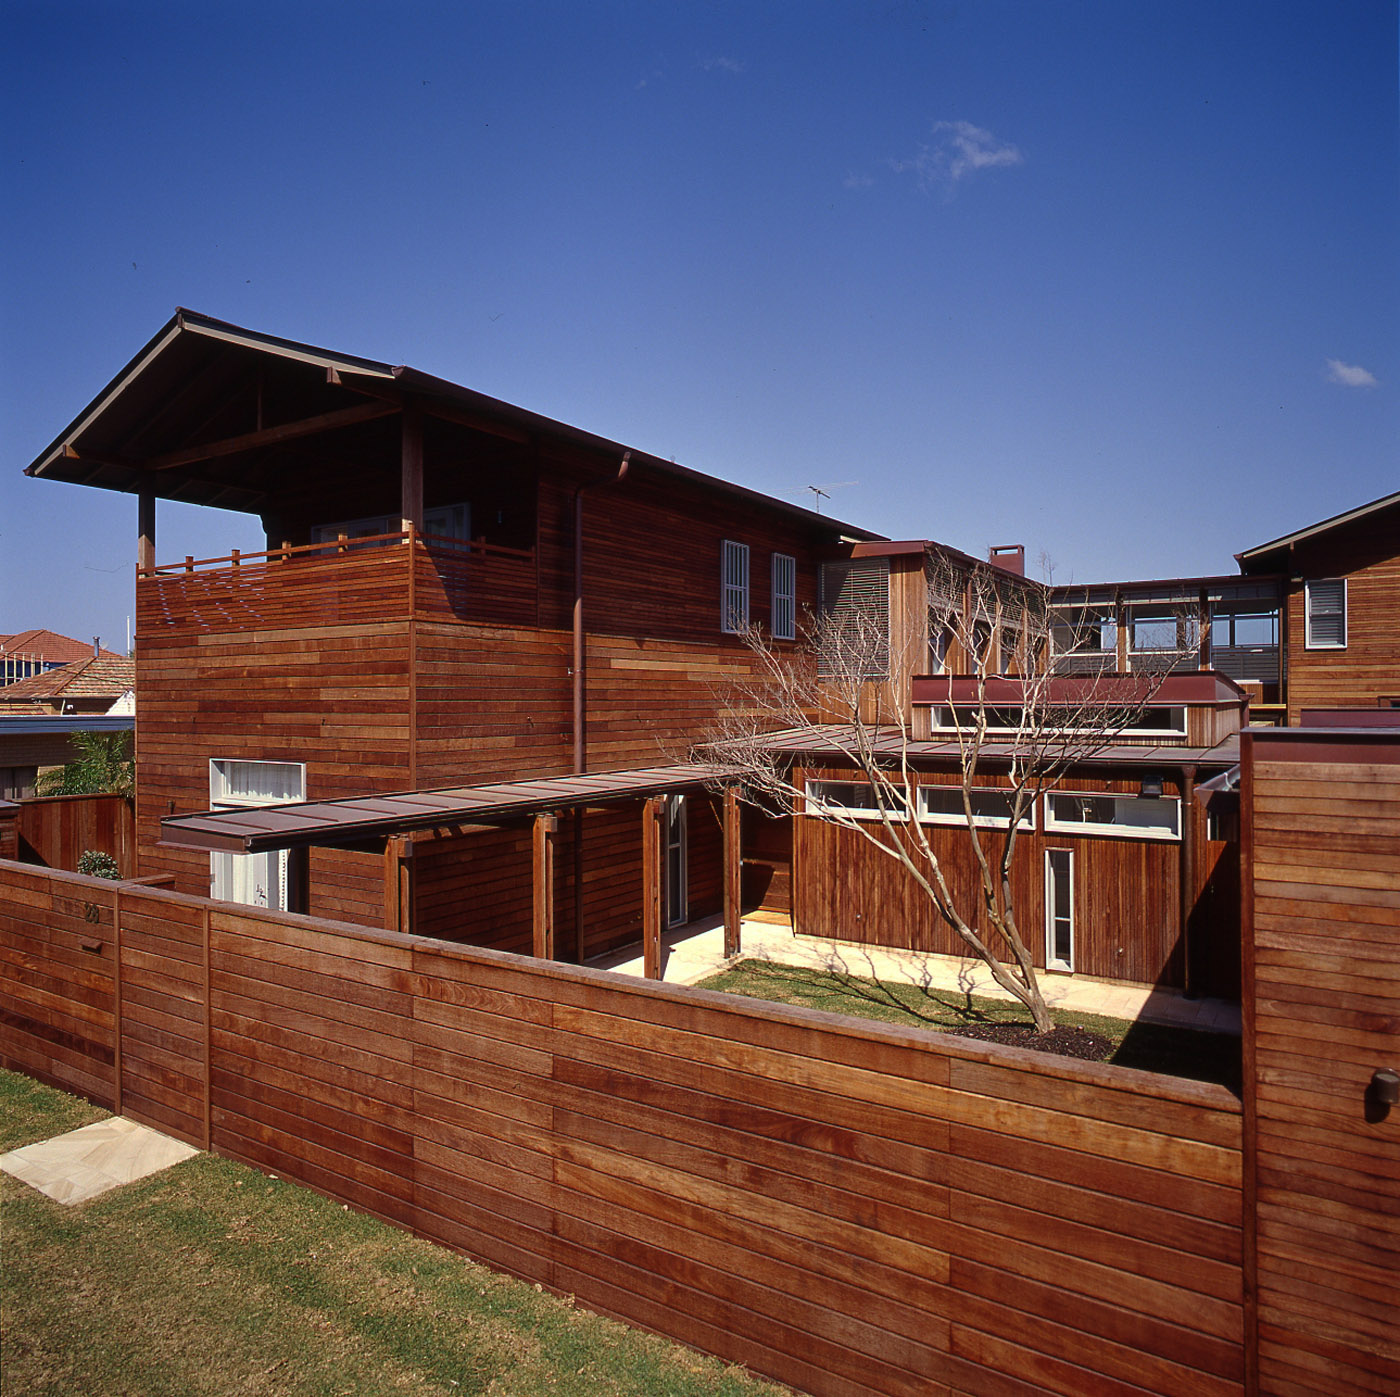 Pittwater House by Sydney award winning residential architecture office Sam Crawford Architects. Kwila timber cladding allows building to age naturally.